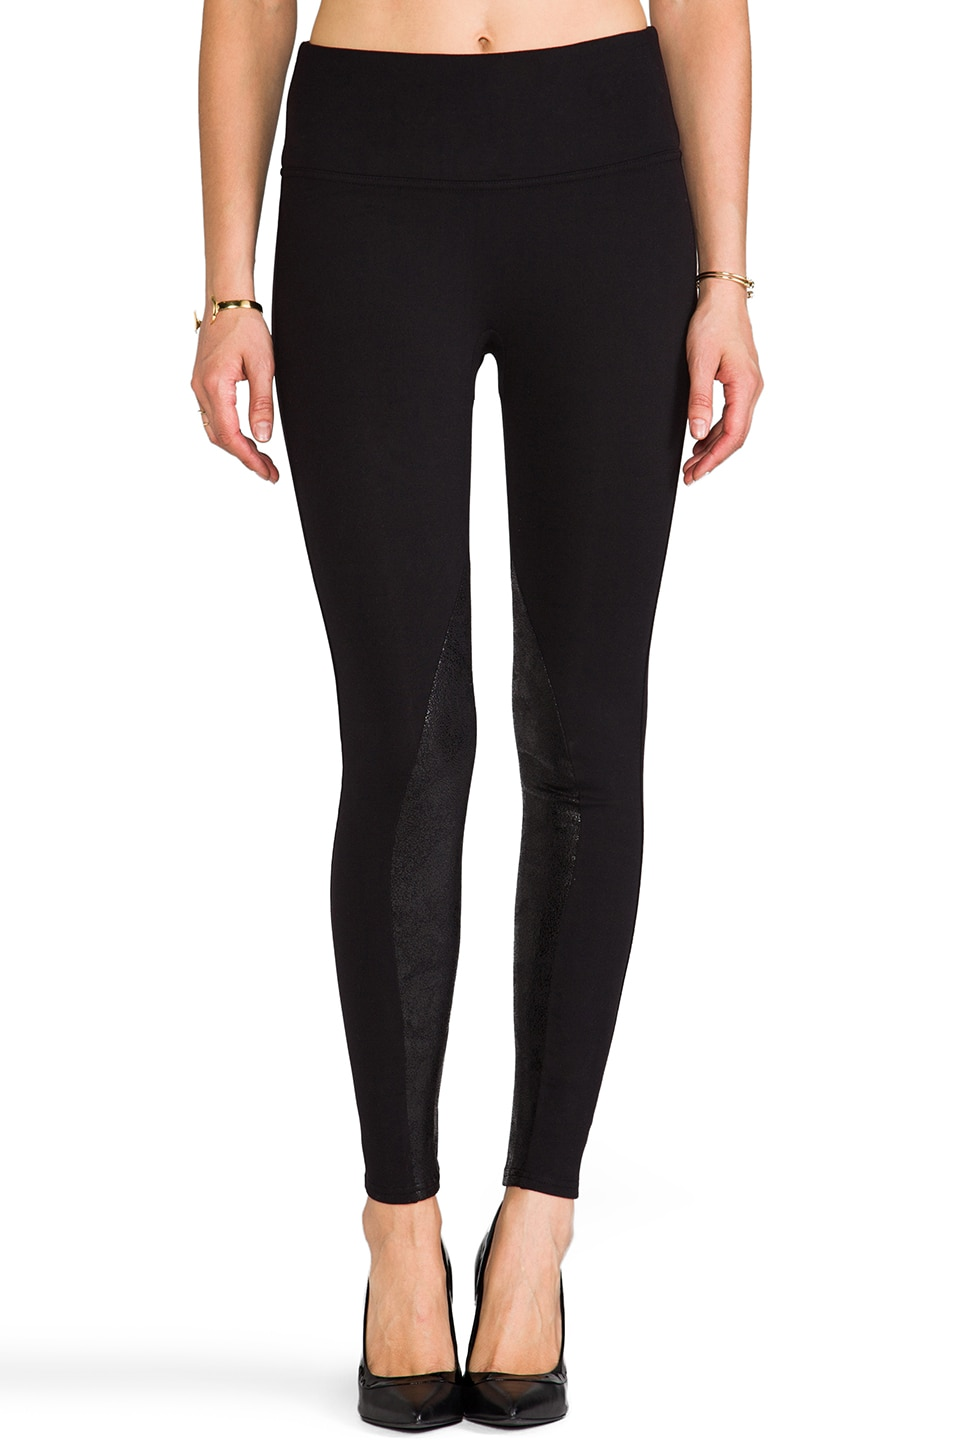 SPANX Ready-To-Wow Riding Legging in Black